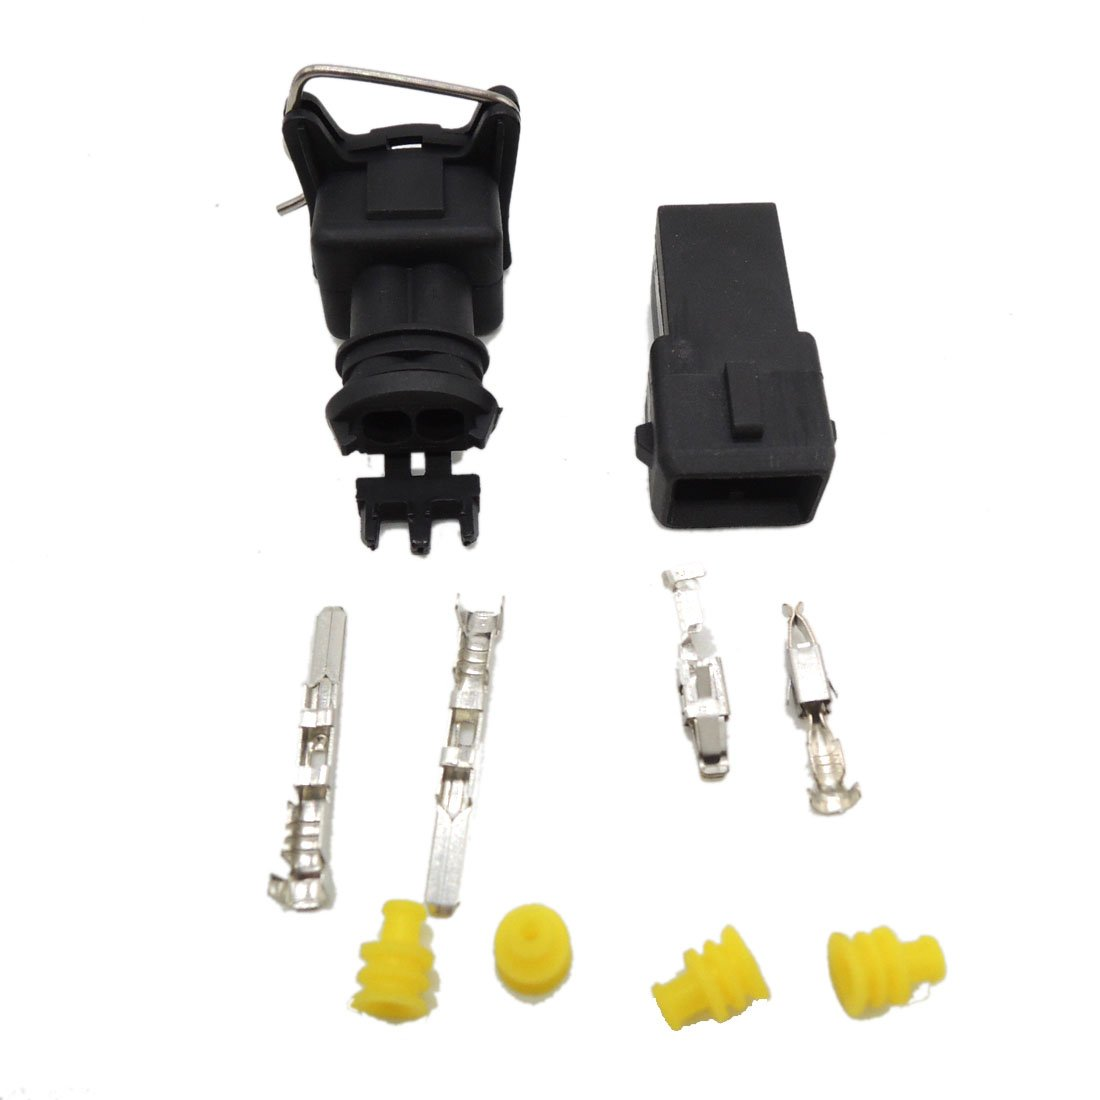 5 set EV1 Fuel Injector Plug Car Waterproof 2 Pin way Electrical Wire Connector Plug automobile Connectors kaifa